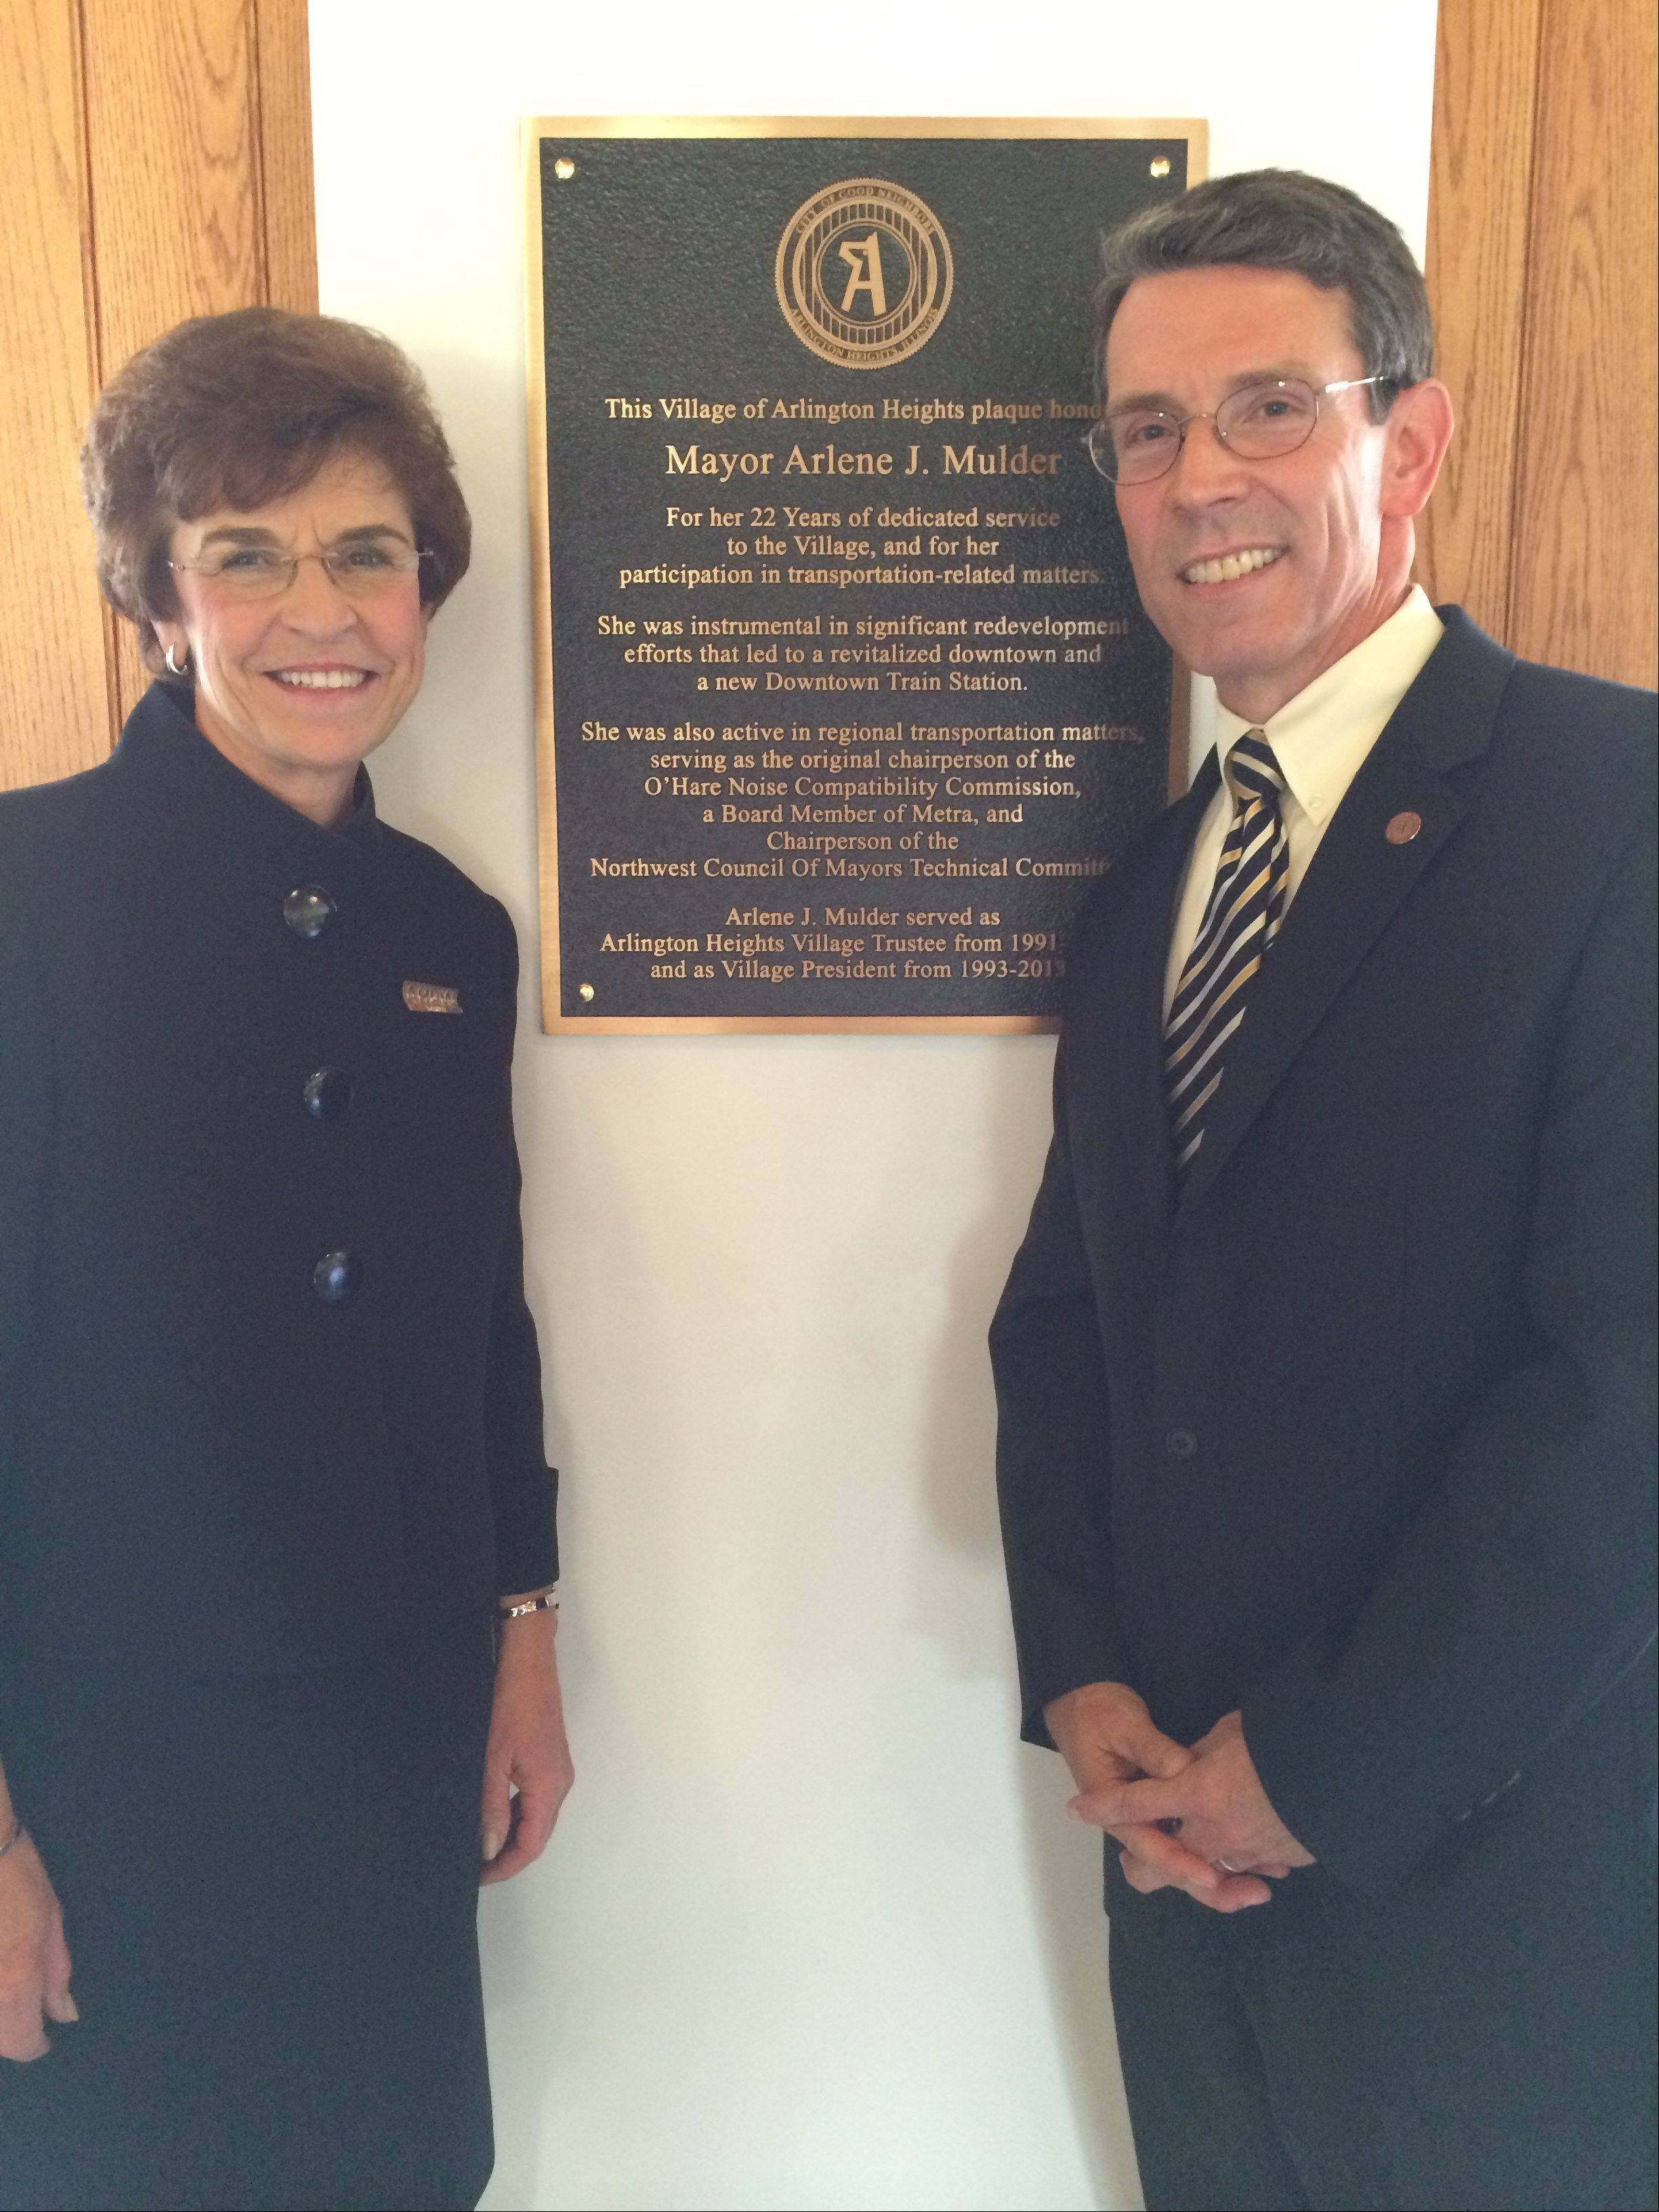 Former Arlington Heights Mayor Arlene Mulder and current Mayor Tom Hayes unveil a plaque at the downtown train station on Tuesday honoring Mulder's 22 years of service to the village and her work on regional transportation issues.